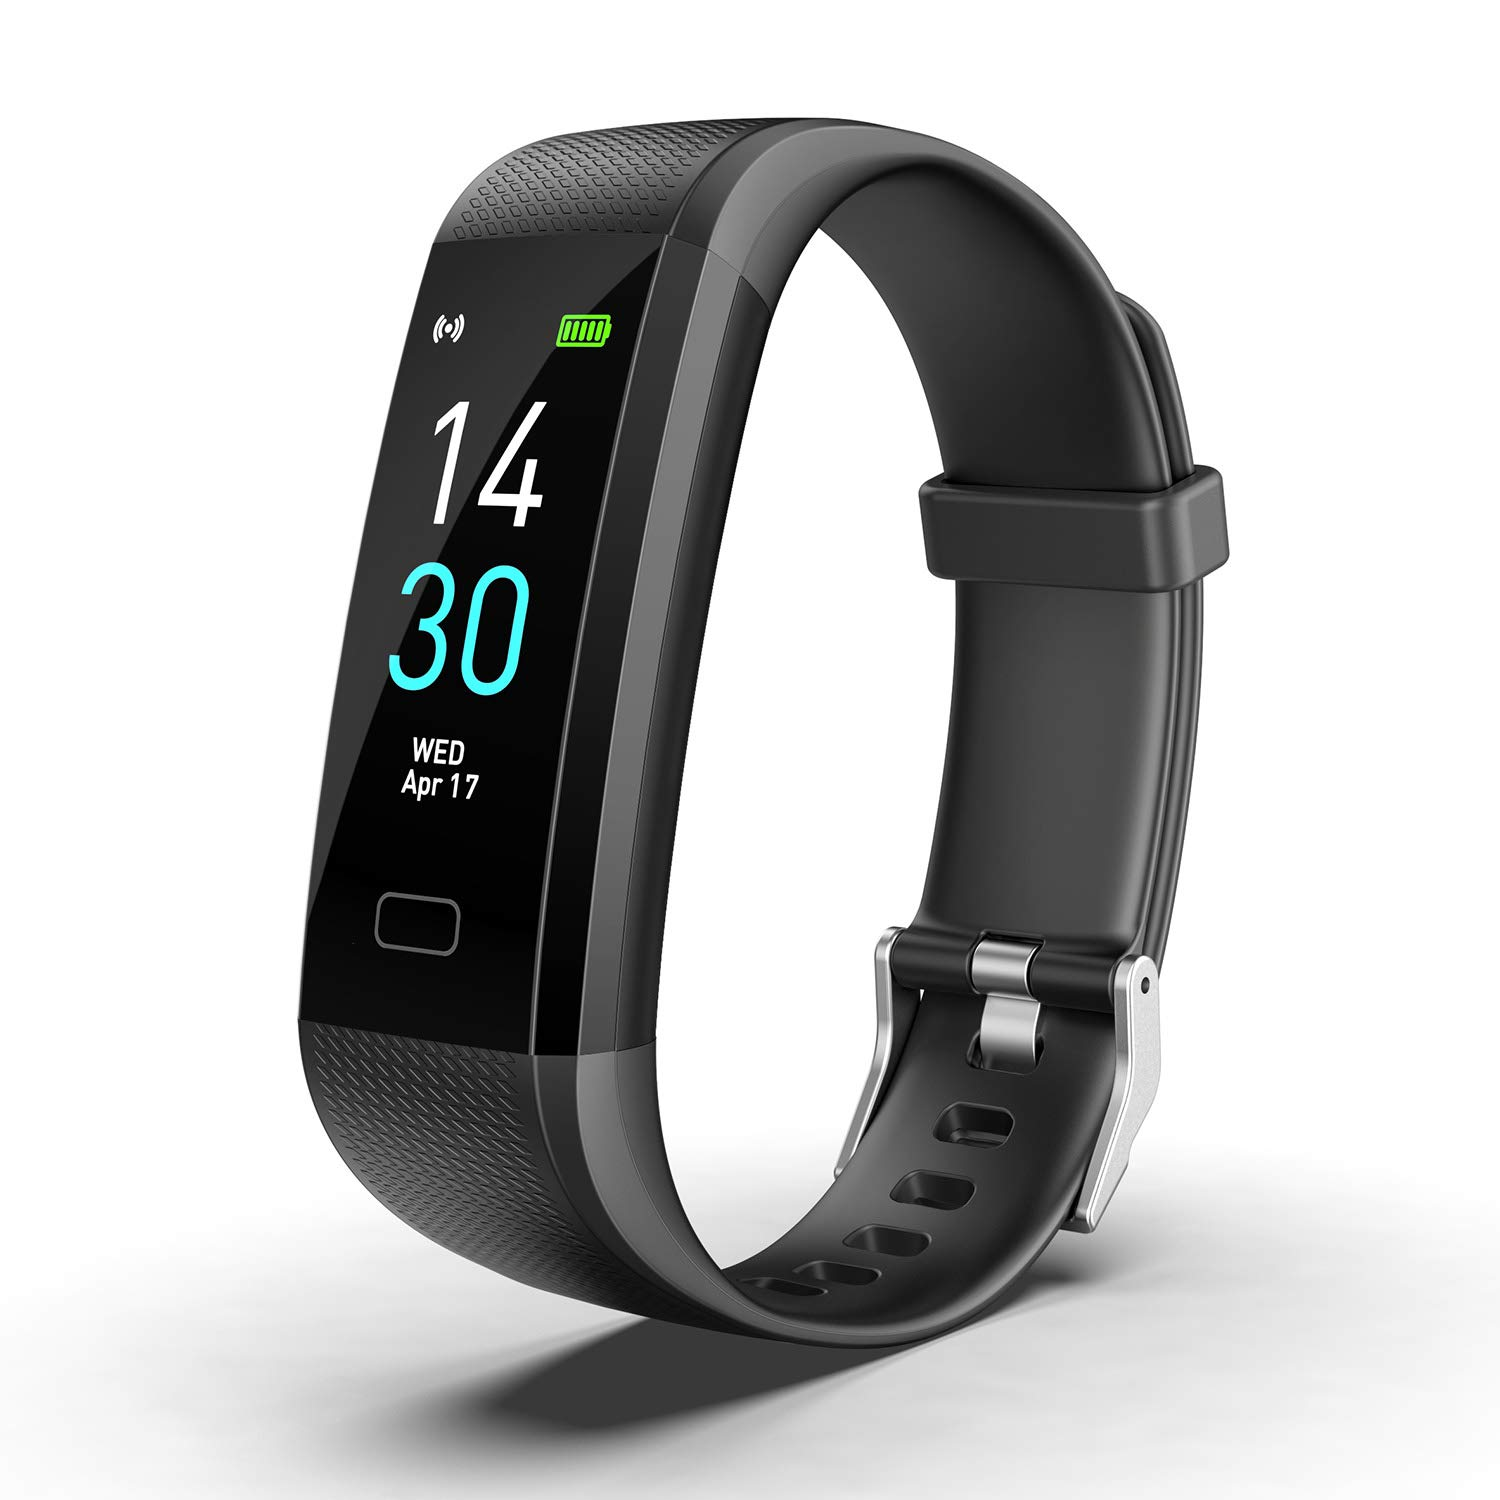 Fitness Tracker HR, Activity Tracker Watch with Heart Rate Monitor, Waterproof Smart Fitness Band with Step Counter, Calorie Counter, Pedometer Watch